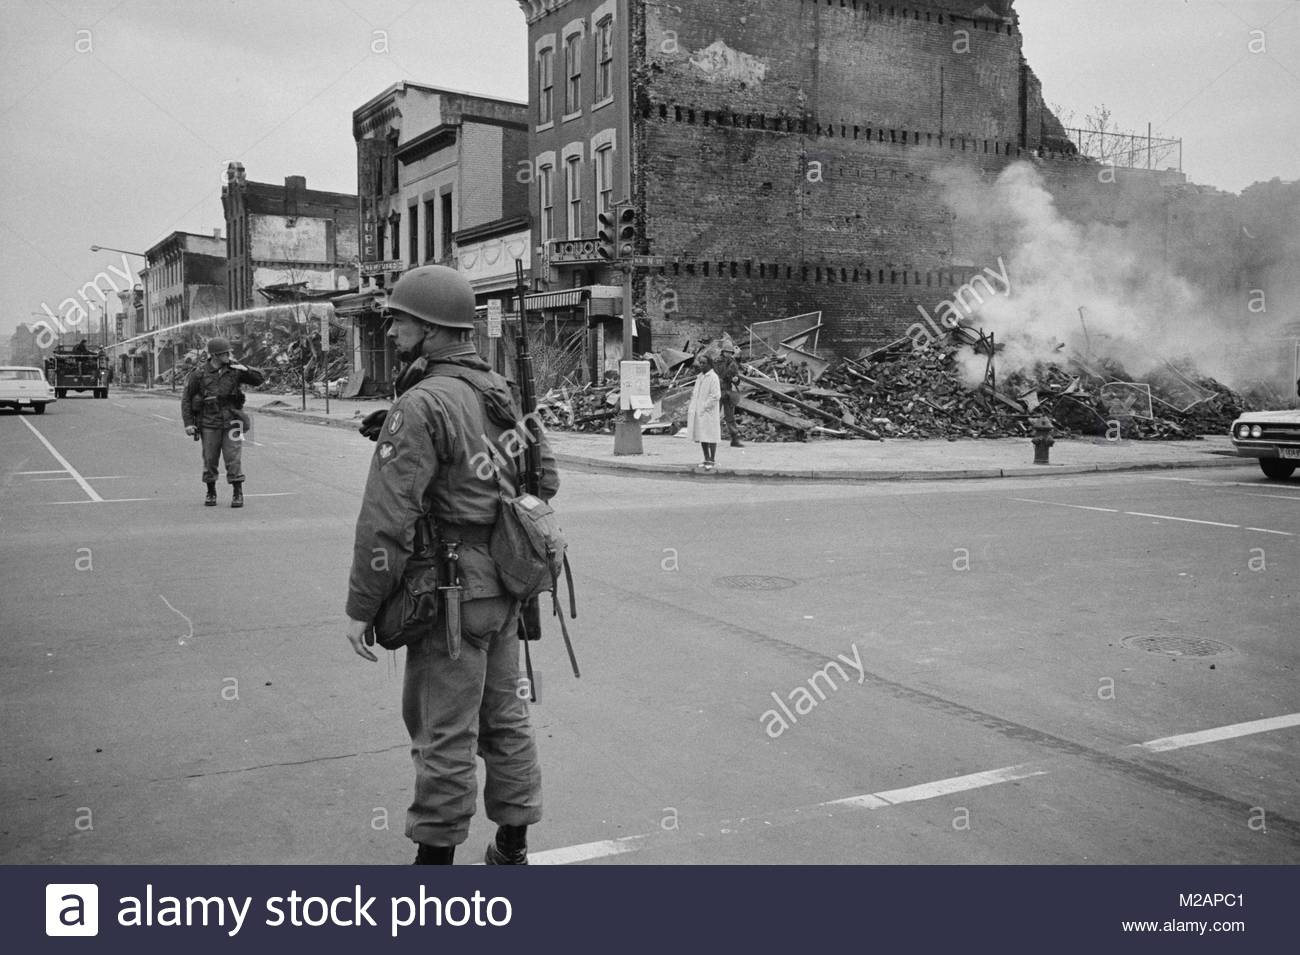 Soldier standing guard in a Washington - Stock Image